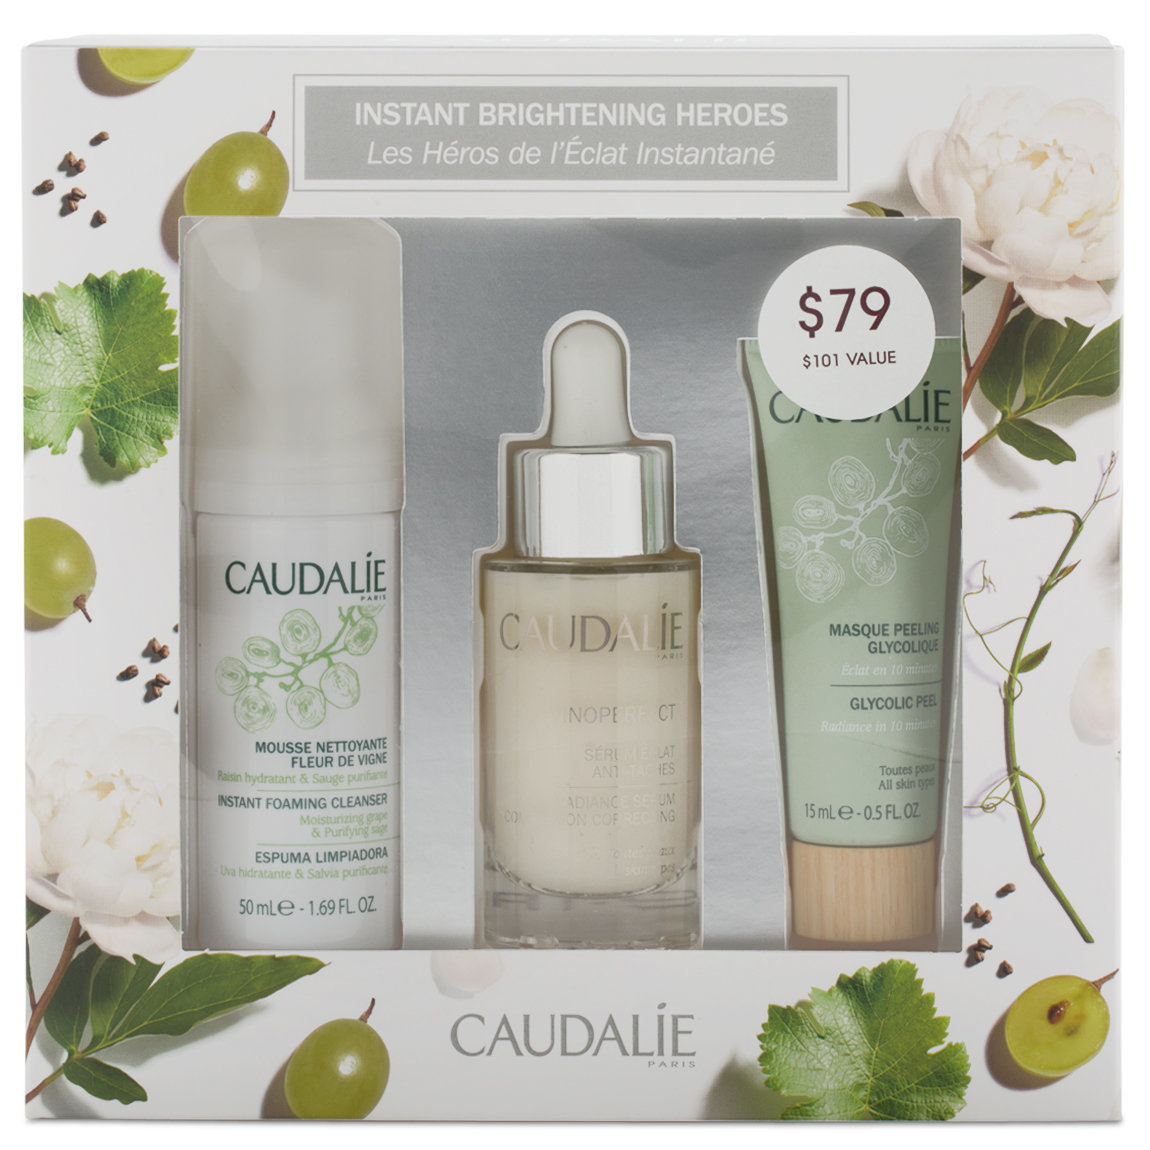 Caudalie Vinoperfect Instant Brightening Heroes Set product smear.